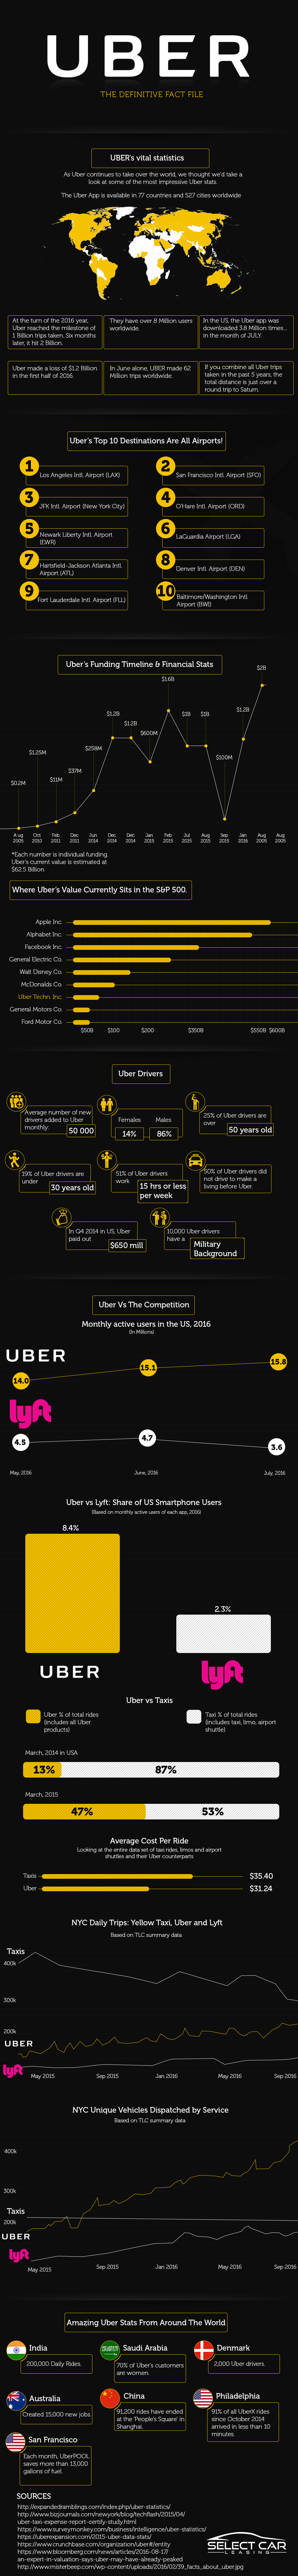 Uber : The Definitive Fact File